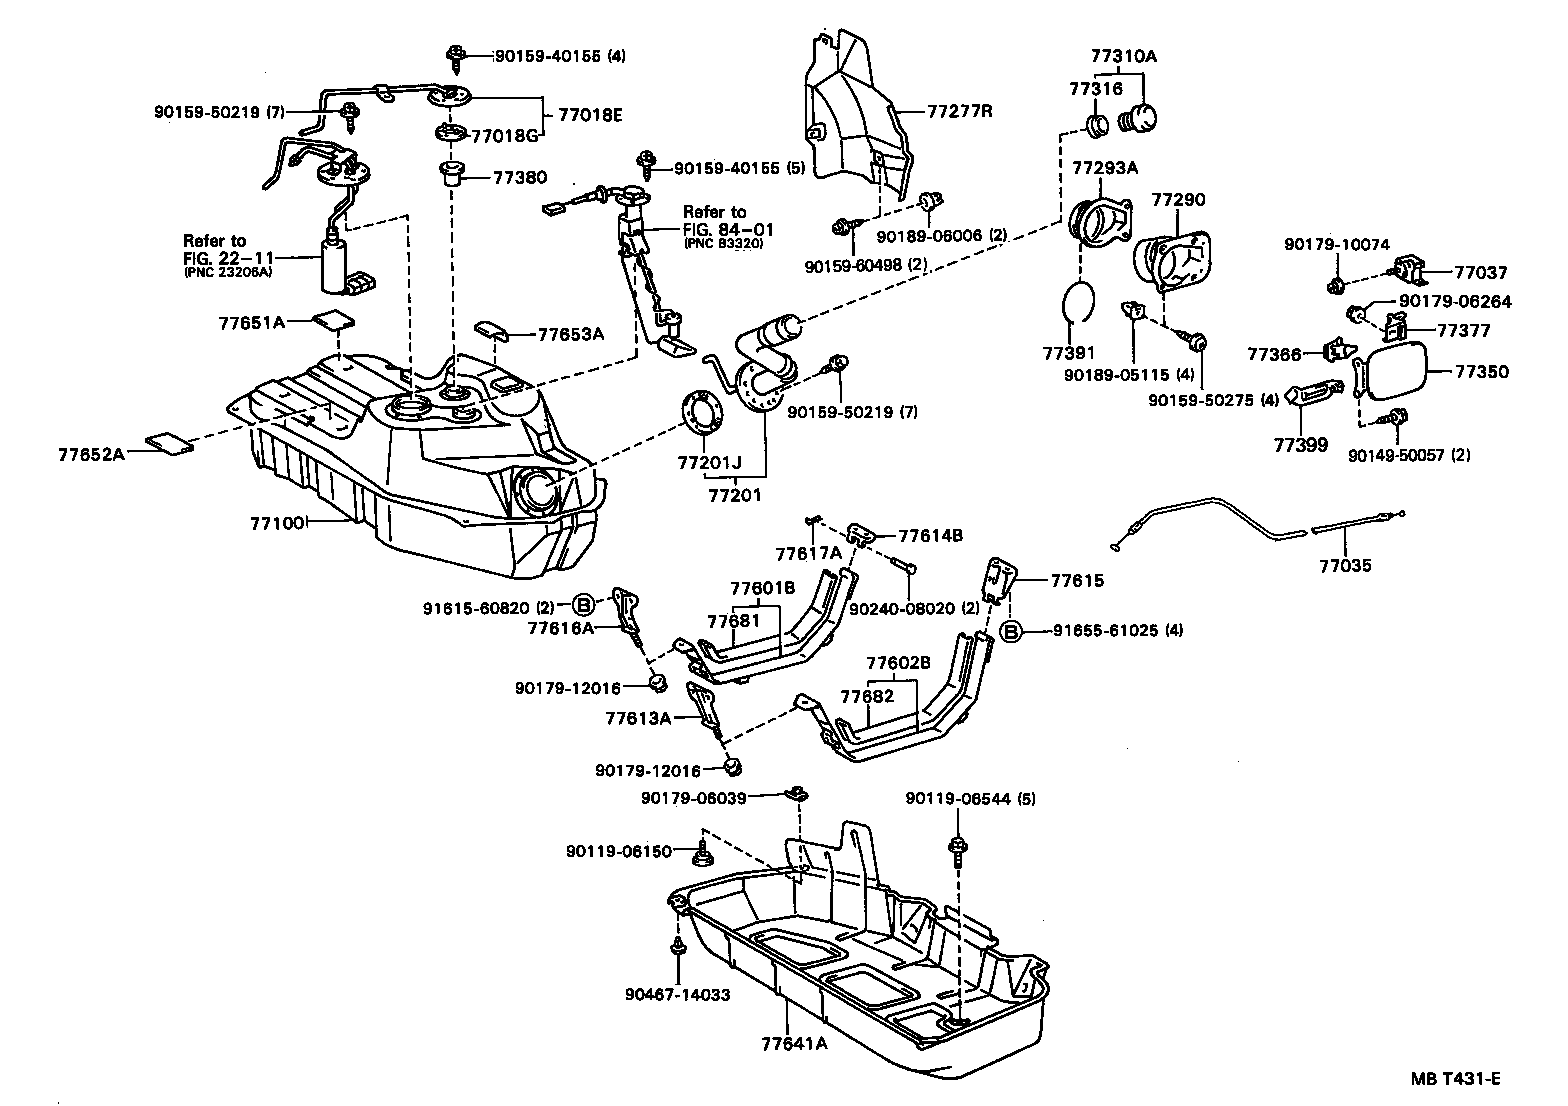 Pontiac G6 Gt 2007 Wiring Diagrams also II0r 18636 in addition 86 Toyota Camry Fuel Filter also Pump Mercury Optimax Fuel System Diagram Mercury 225 Optimax Fuel furthermore 93 Cougar Fuse Box. on 2000 toyota celica gt fuel filter location